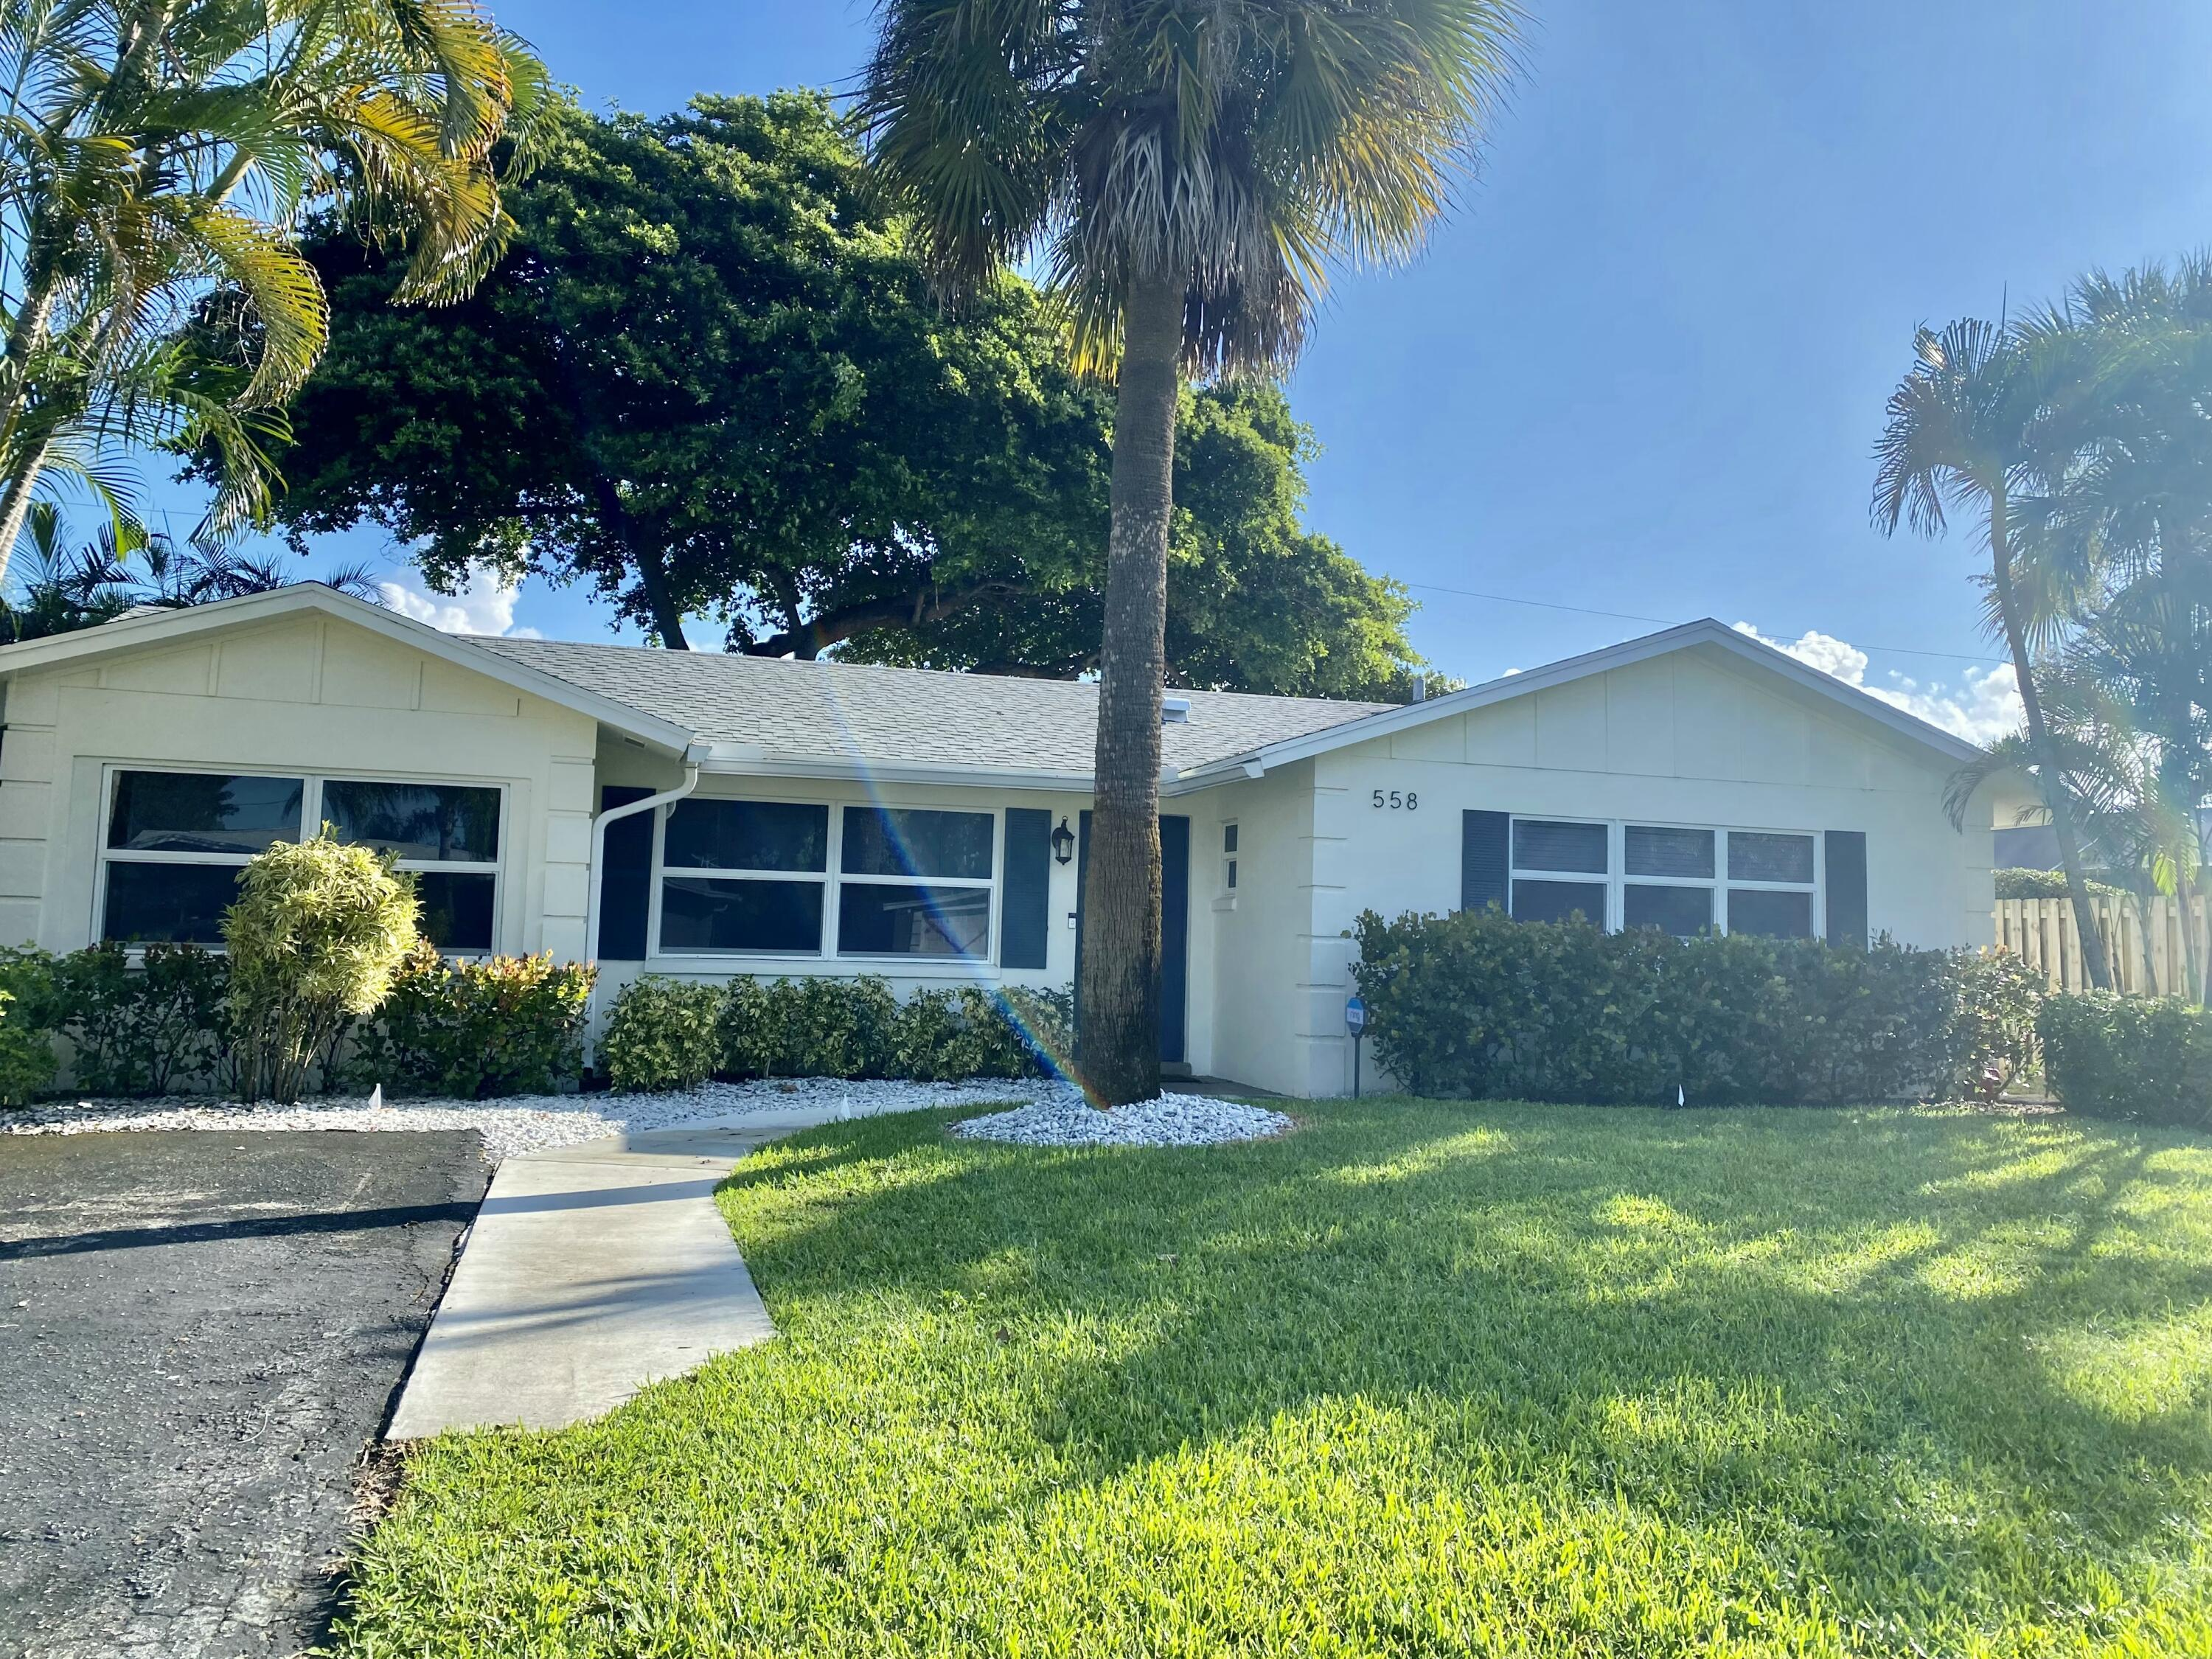 Perfect Seasonal rental in the heart of Palm Beach Gardens! Conveniently located minutes from I-95, the beach, Gardens Mall, and fantastic North Palm Beach restaurants. This is the perfect location to relax and enjoy your stay in South Florida.